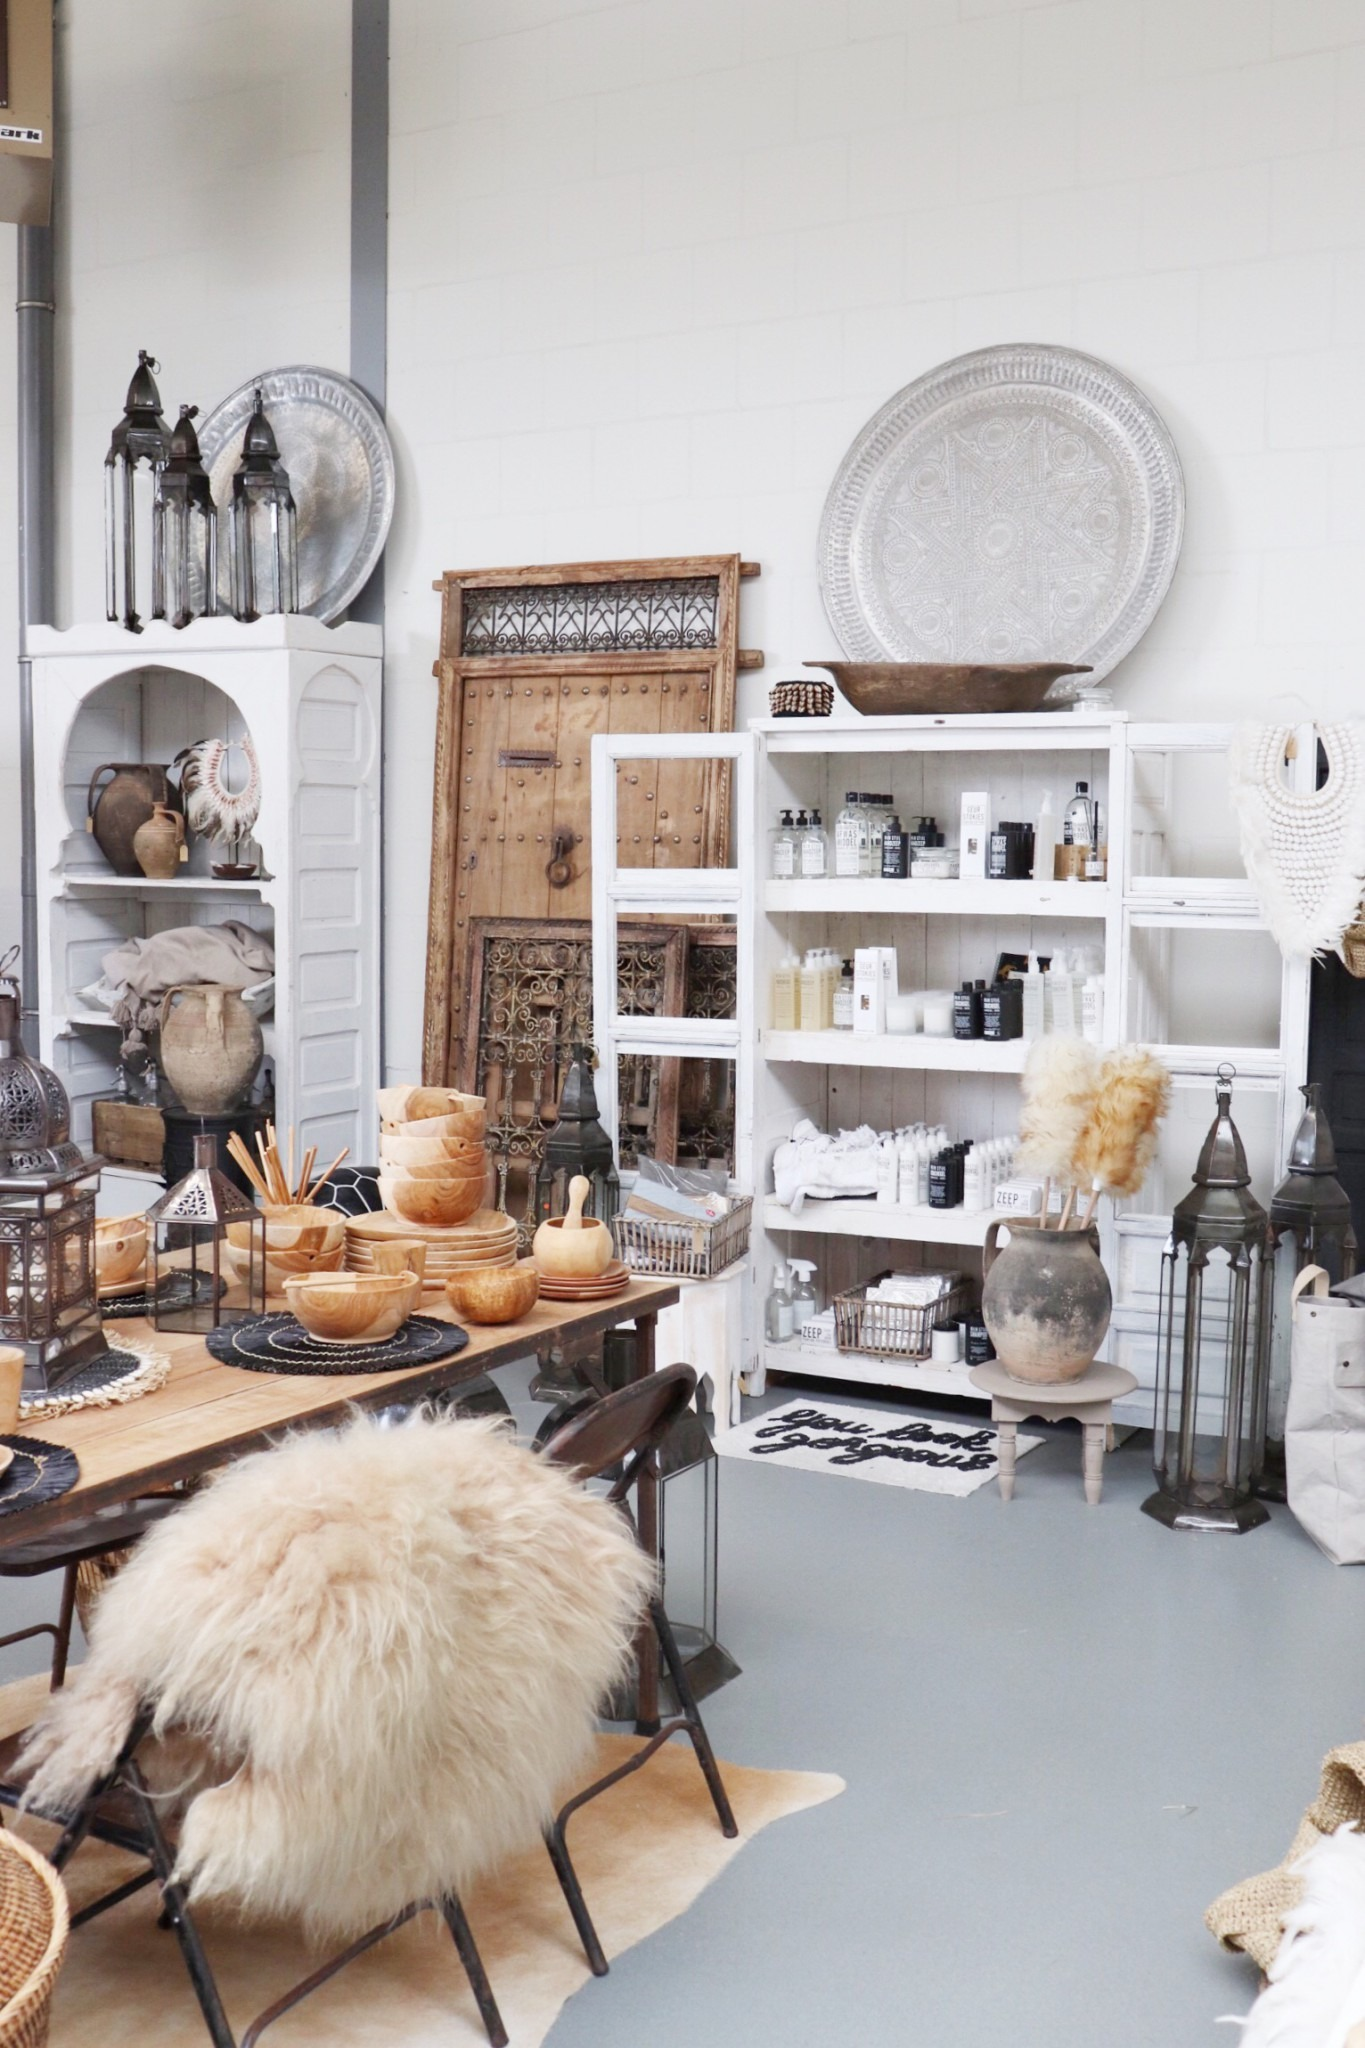 Loods Noa May: interieur winkel Marokko meets Scandinavië